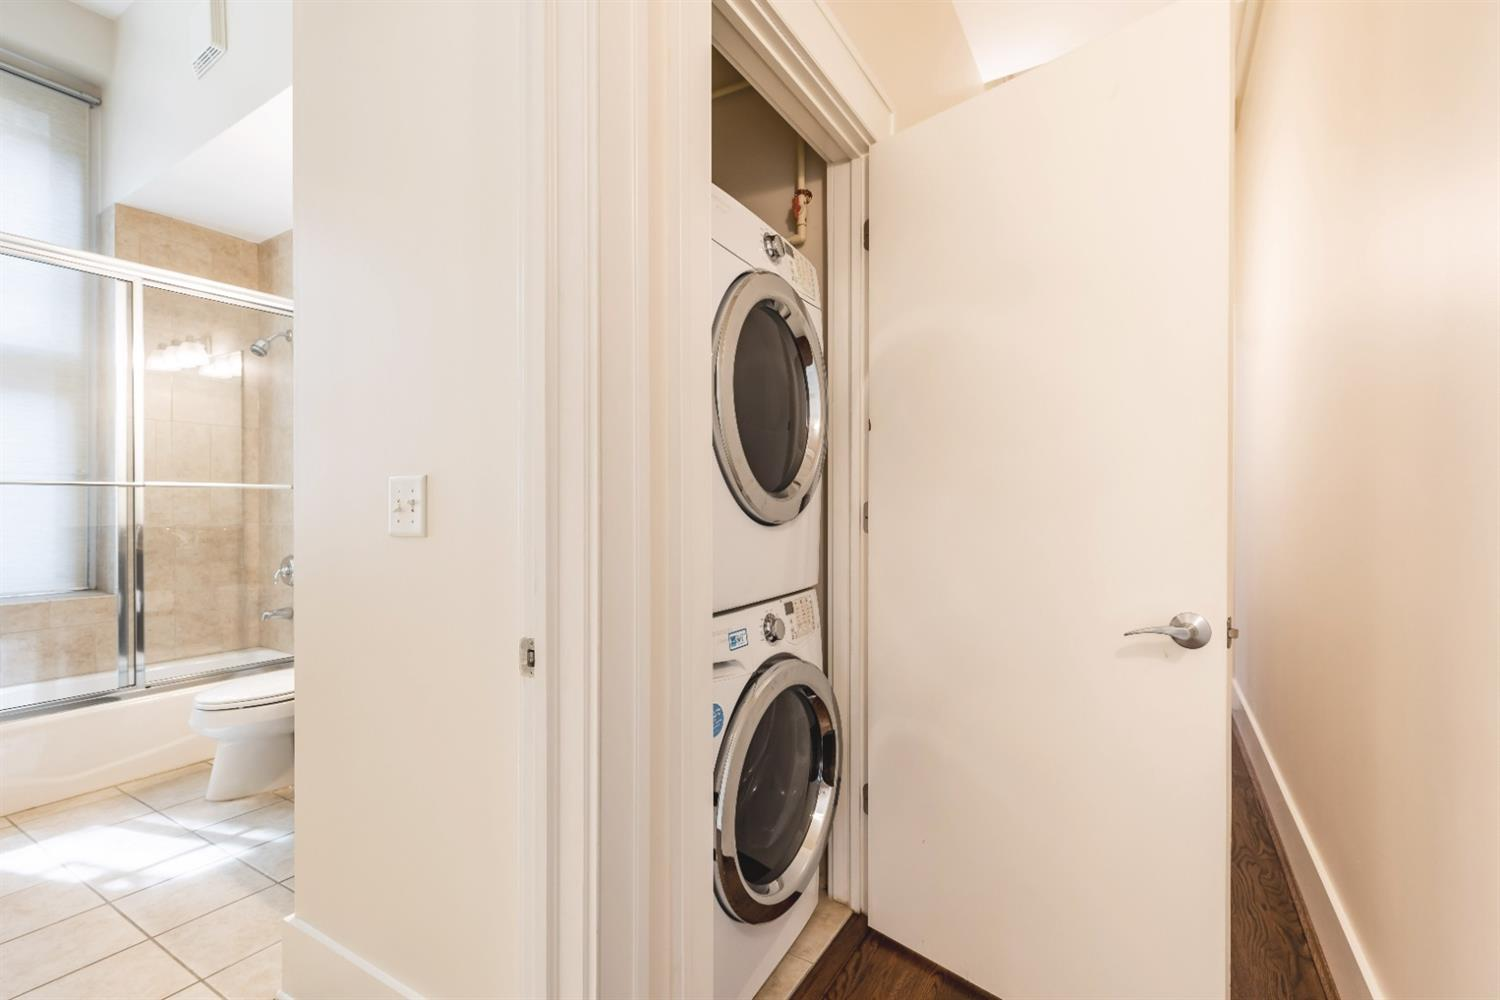 Laundry located outside bathroom 2, washer/dryer stays.